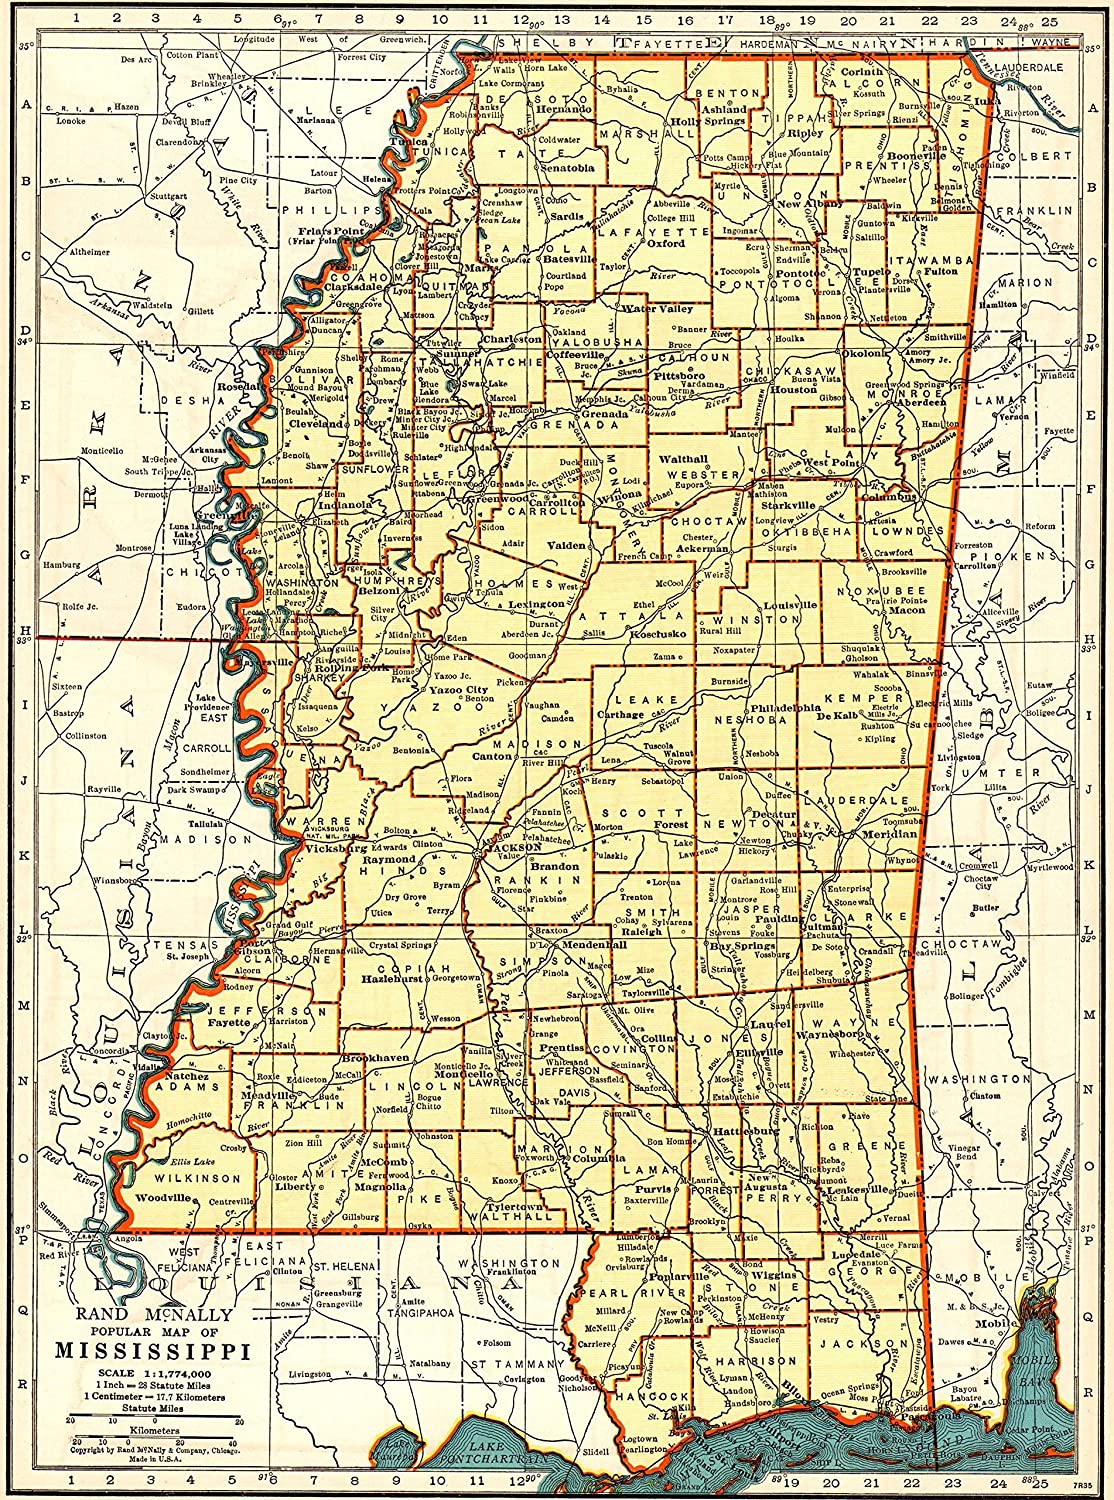 1939 Antique Mississippi State Map Original Vintage Map of Mississippi Print Not a Reprint Home Office Decor Gallery Wall Art #1176